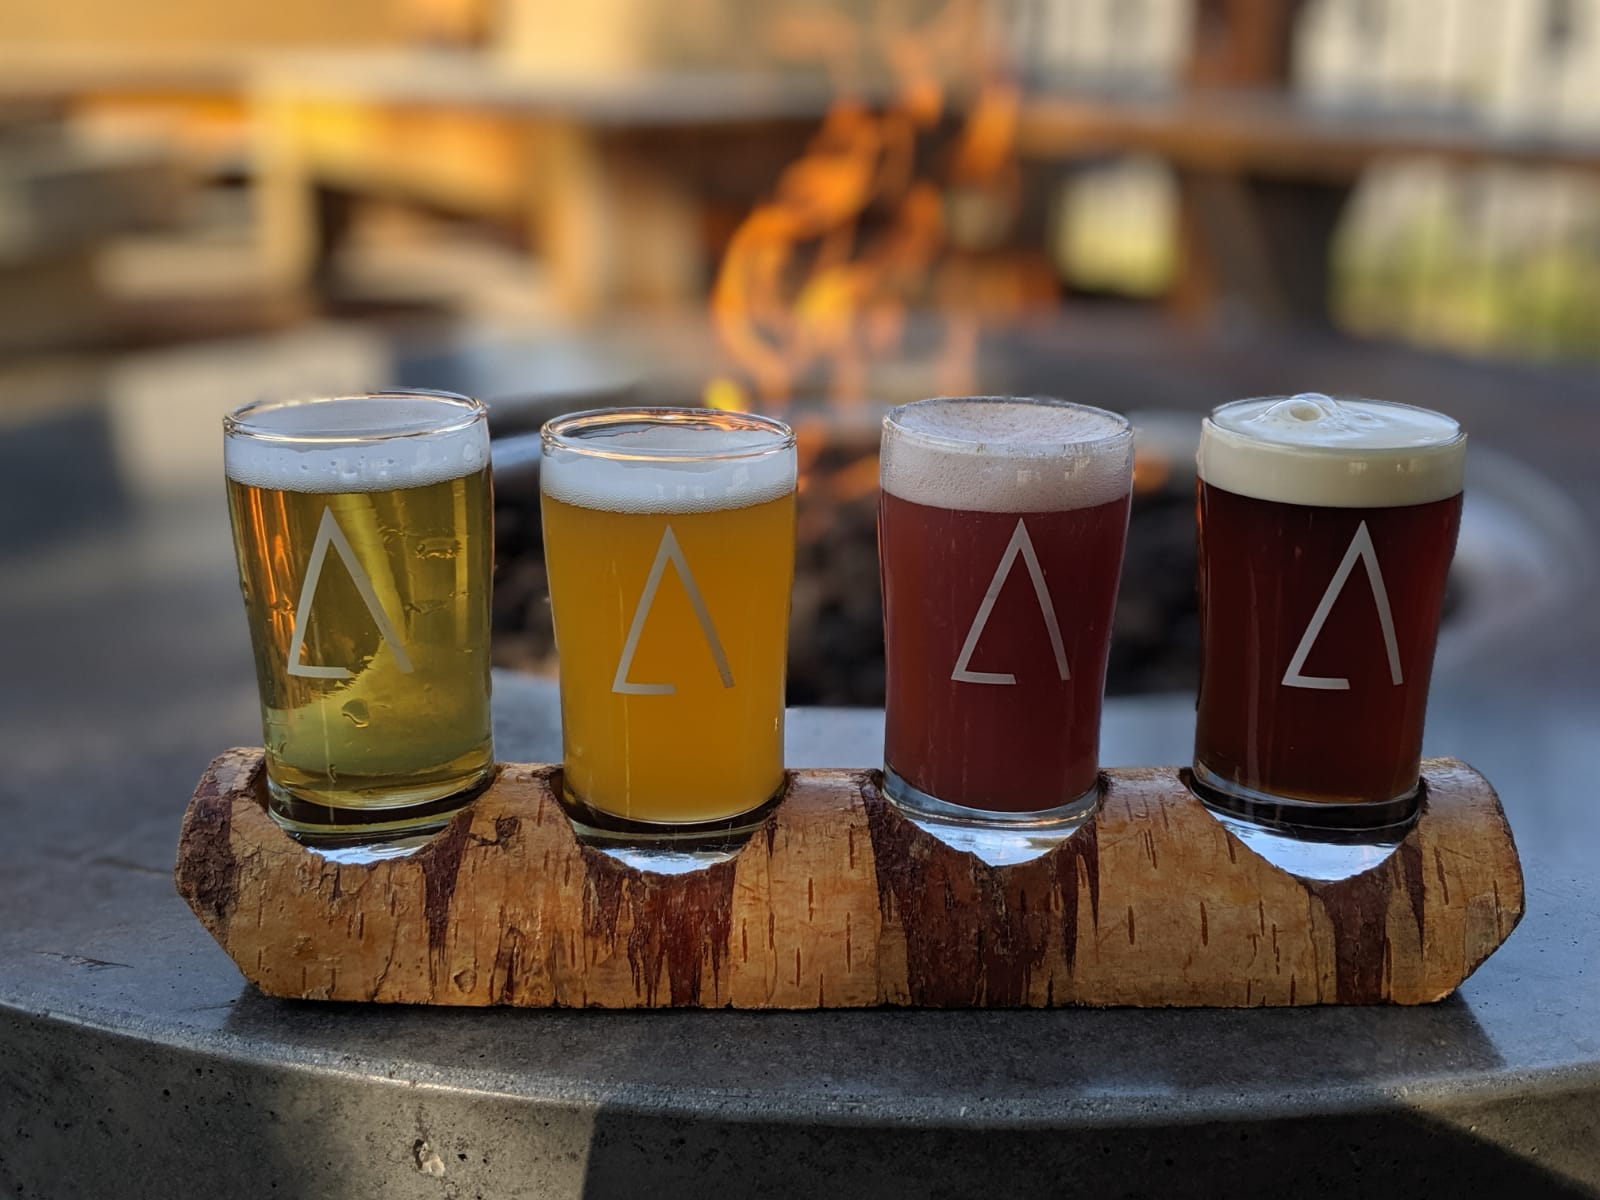 A flight of A-Frame beers